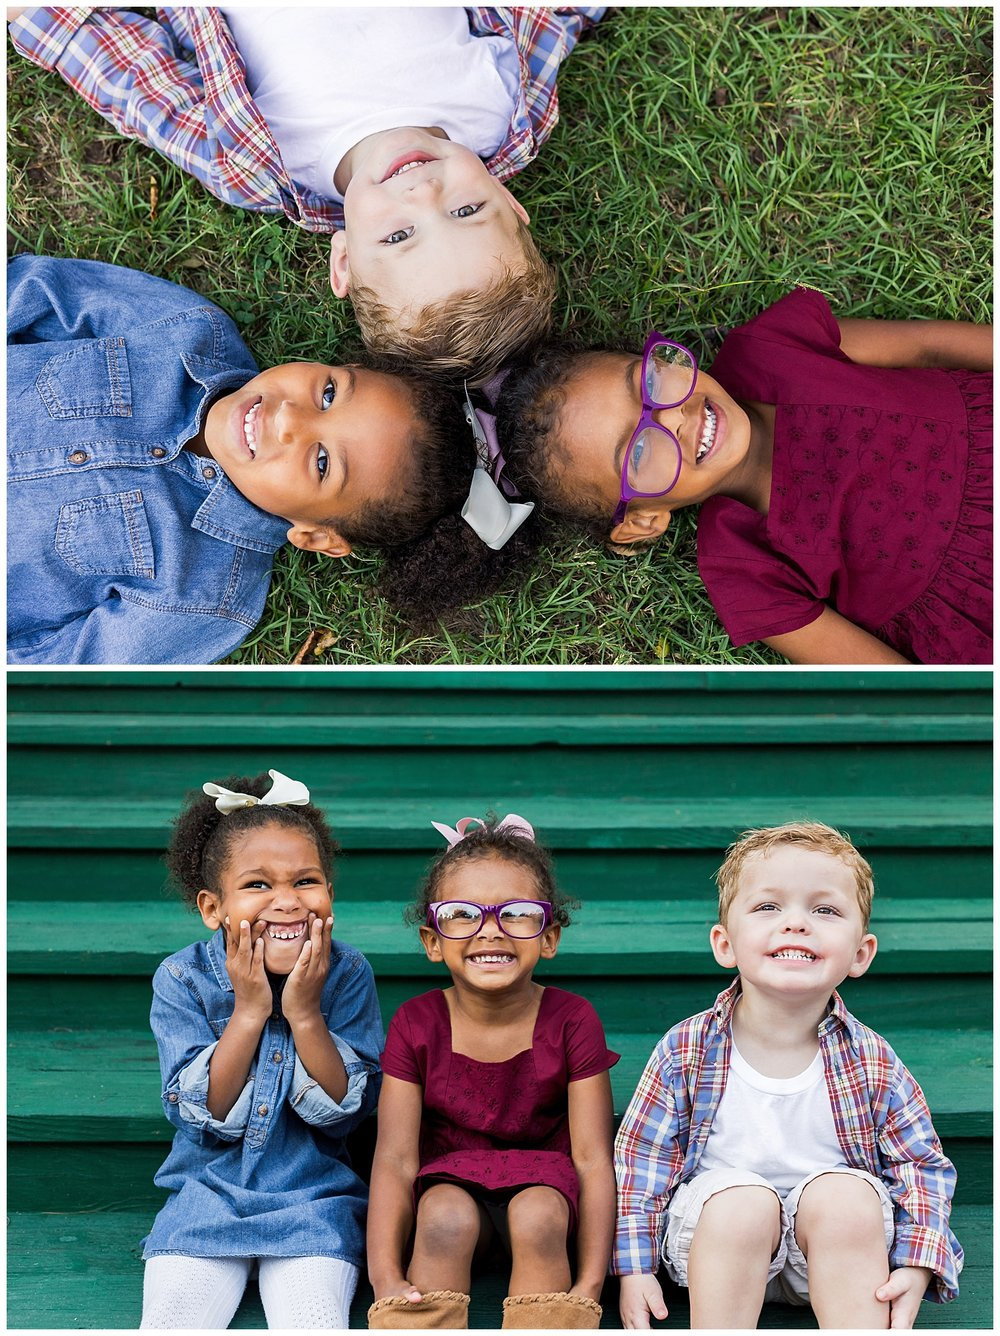 childrens portraits family photos young children auburn alabama kiesel lauren beesley photography